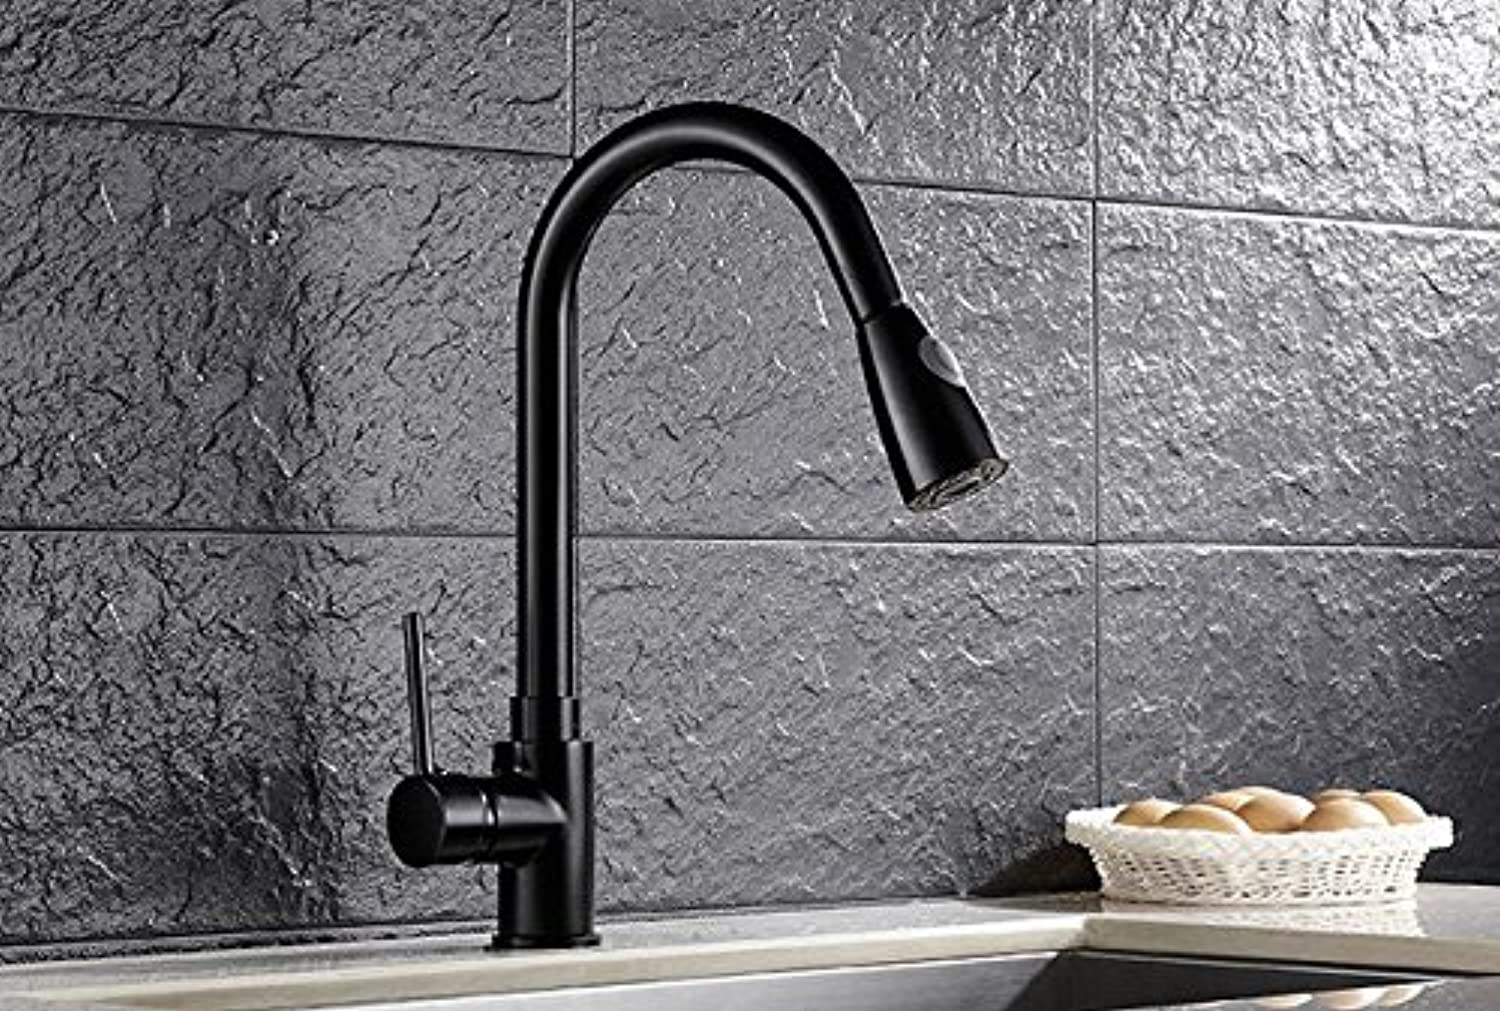 Diongrdk Kitchen Pull-Out Faucet Flume, Dish Washing Basin, Cold and Hot redating Black Faucet